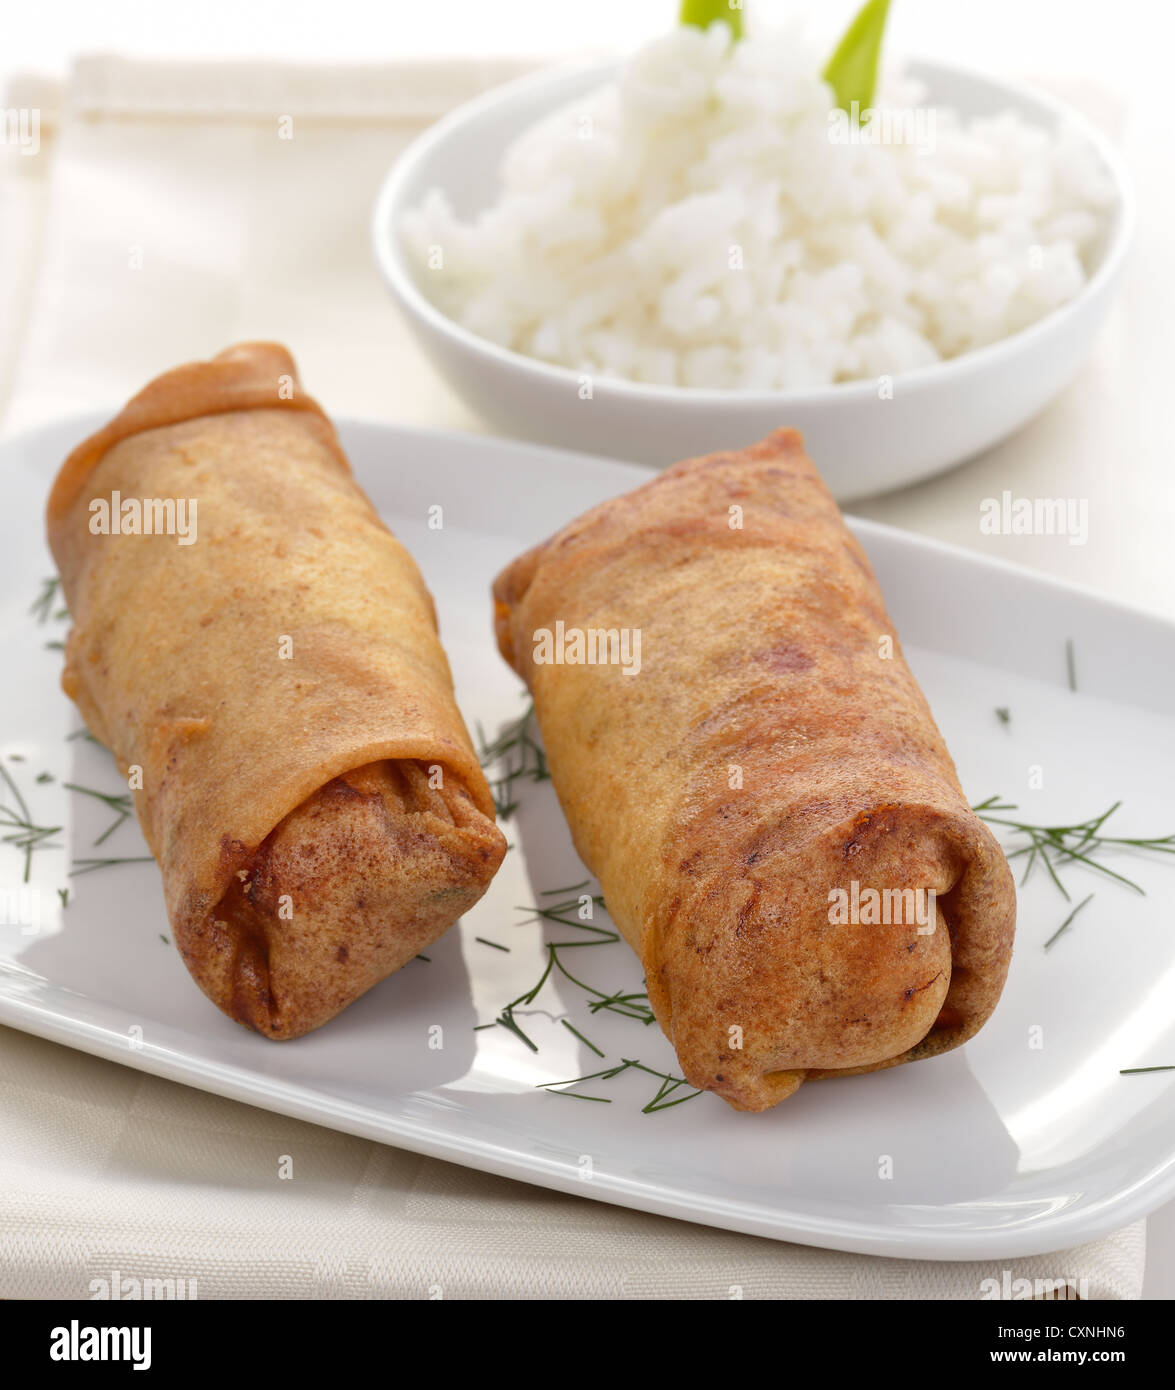 Fried Chicken Rolls And Rice - Stock Image